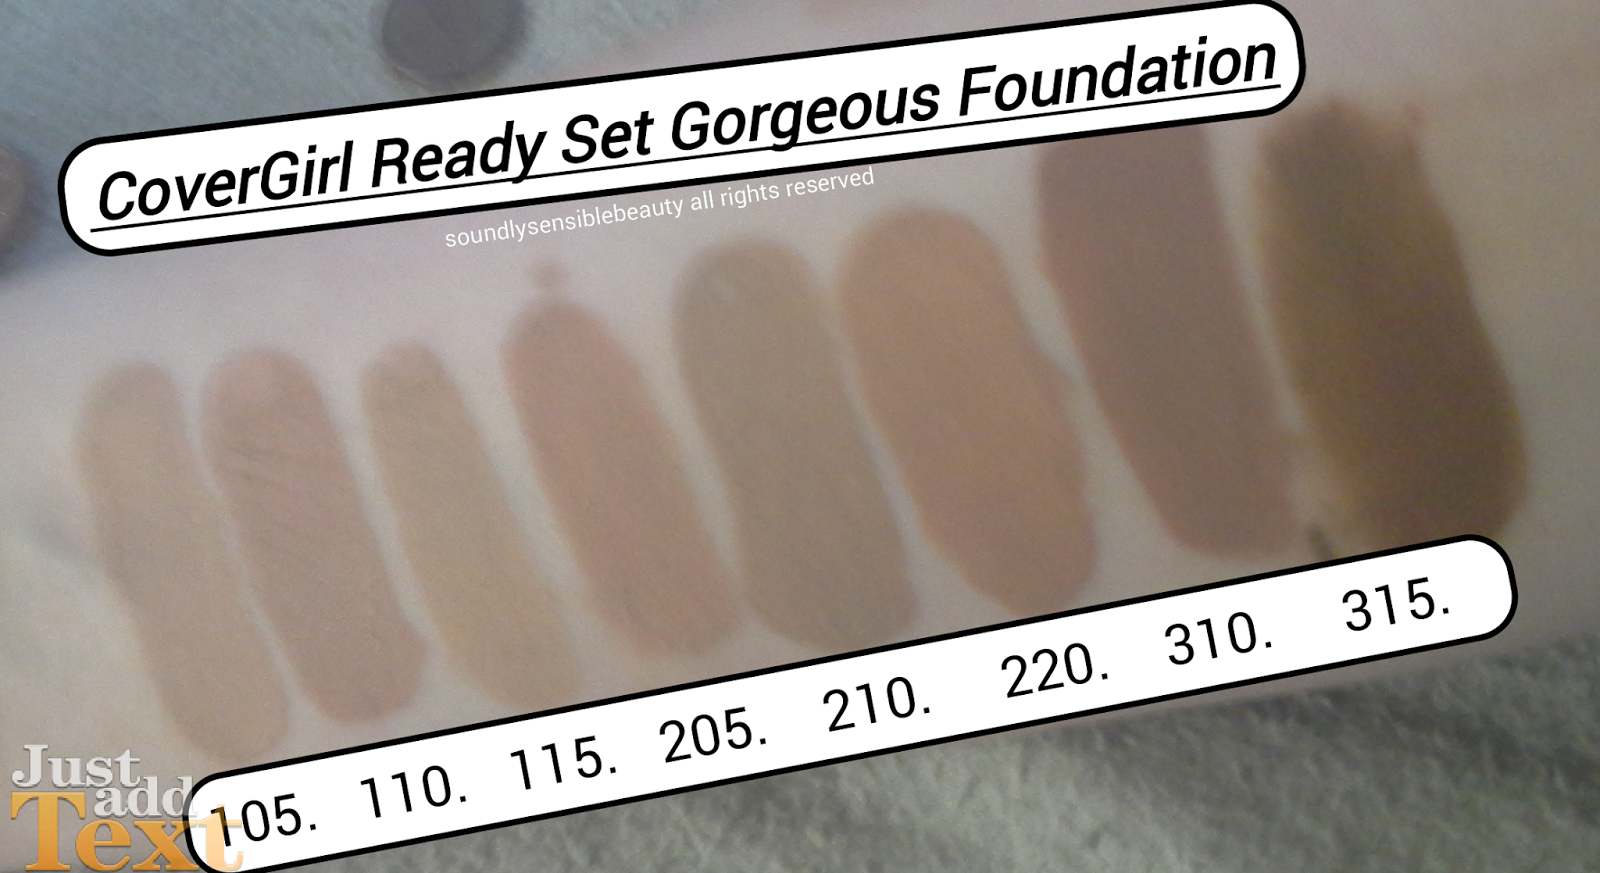 CoverGirl Ready Set Gorgeous Foundation; Review & Swatches of Shades 105 Classic Ivory, 110 Creamy Natural, 115 Buff Beige, 205 Natural Beige, 210 Medium Beige, 220 Soft Honey,  310 Classic Tan, 315 Tawny